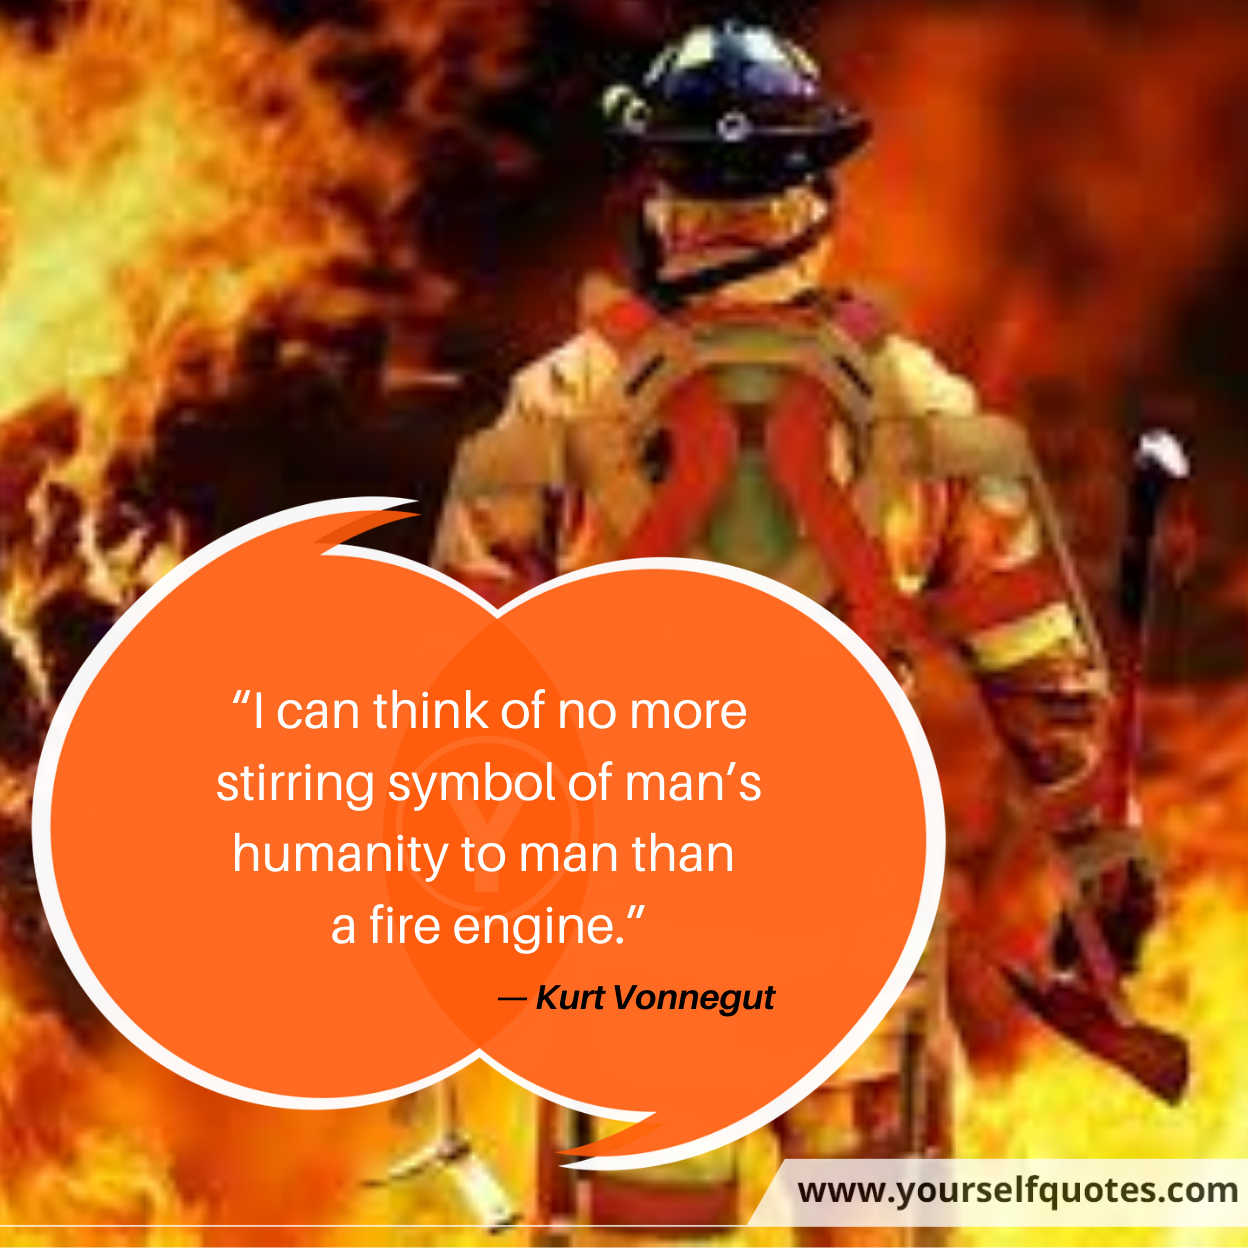 Firefighter's Day Quotes Messages Images by Kurt Vonnegut